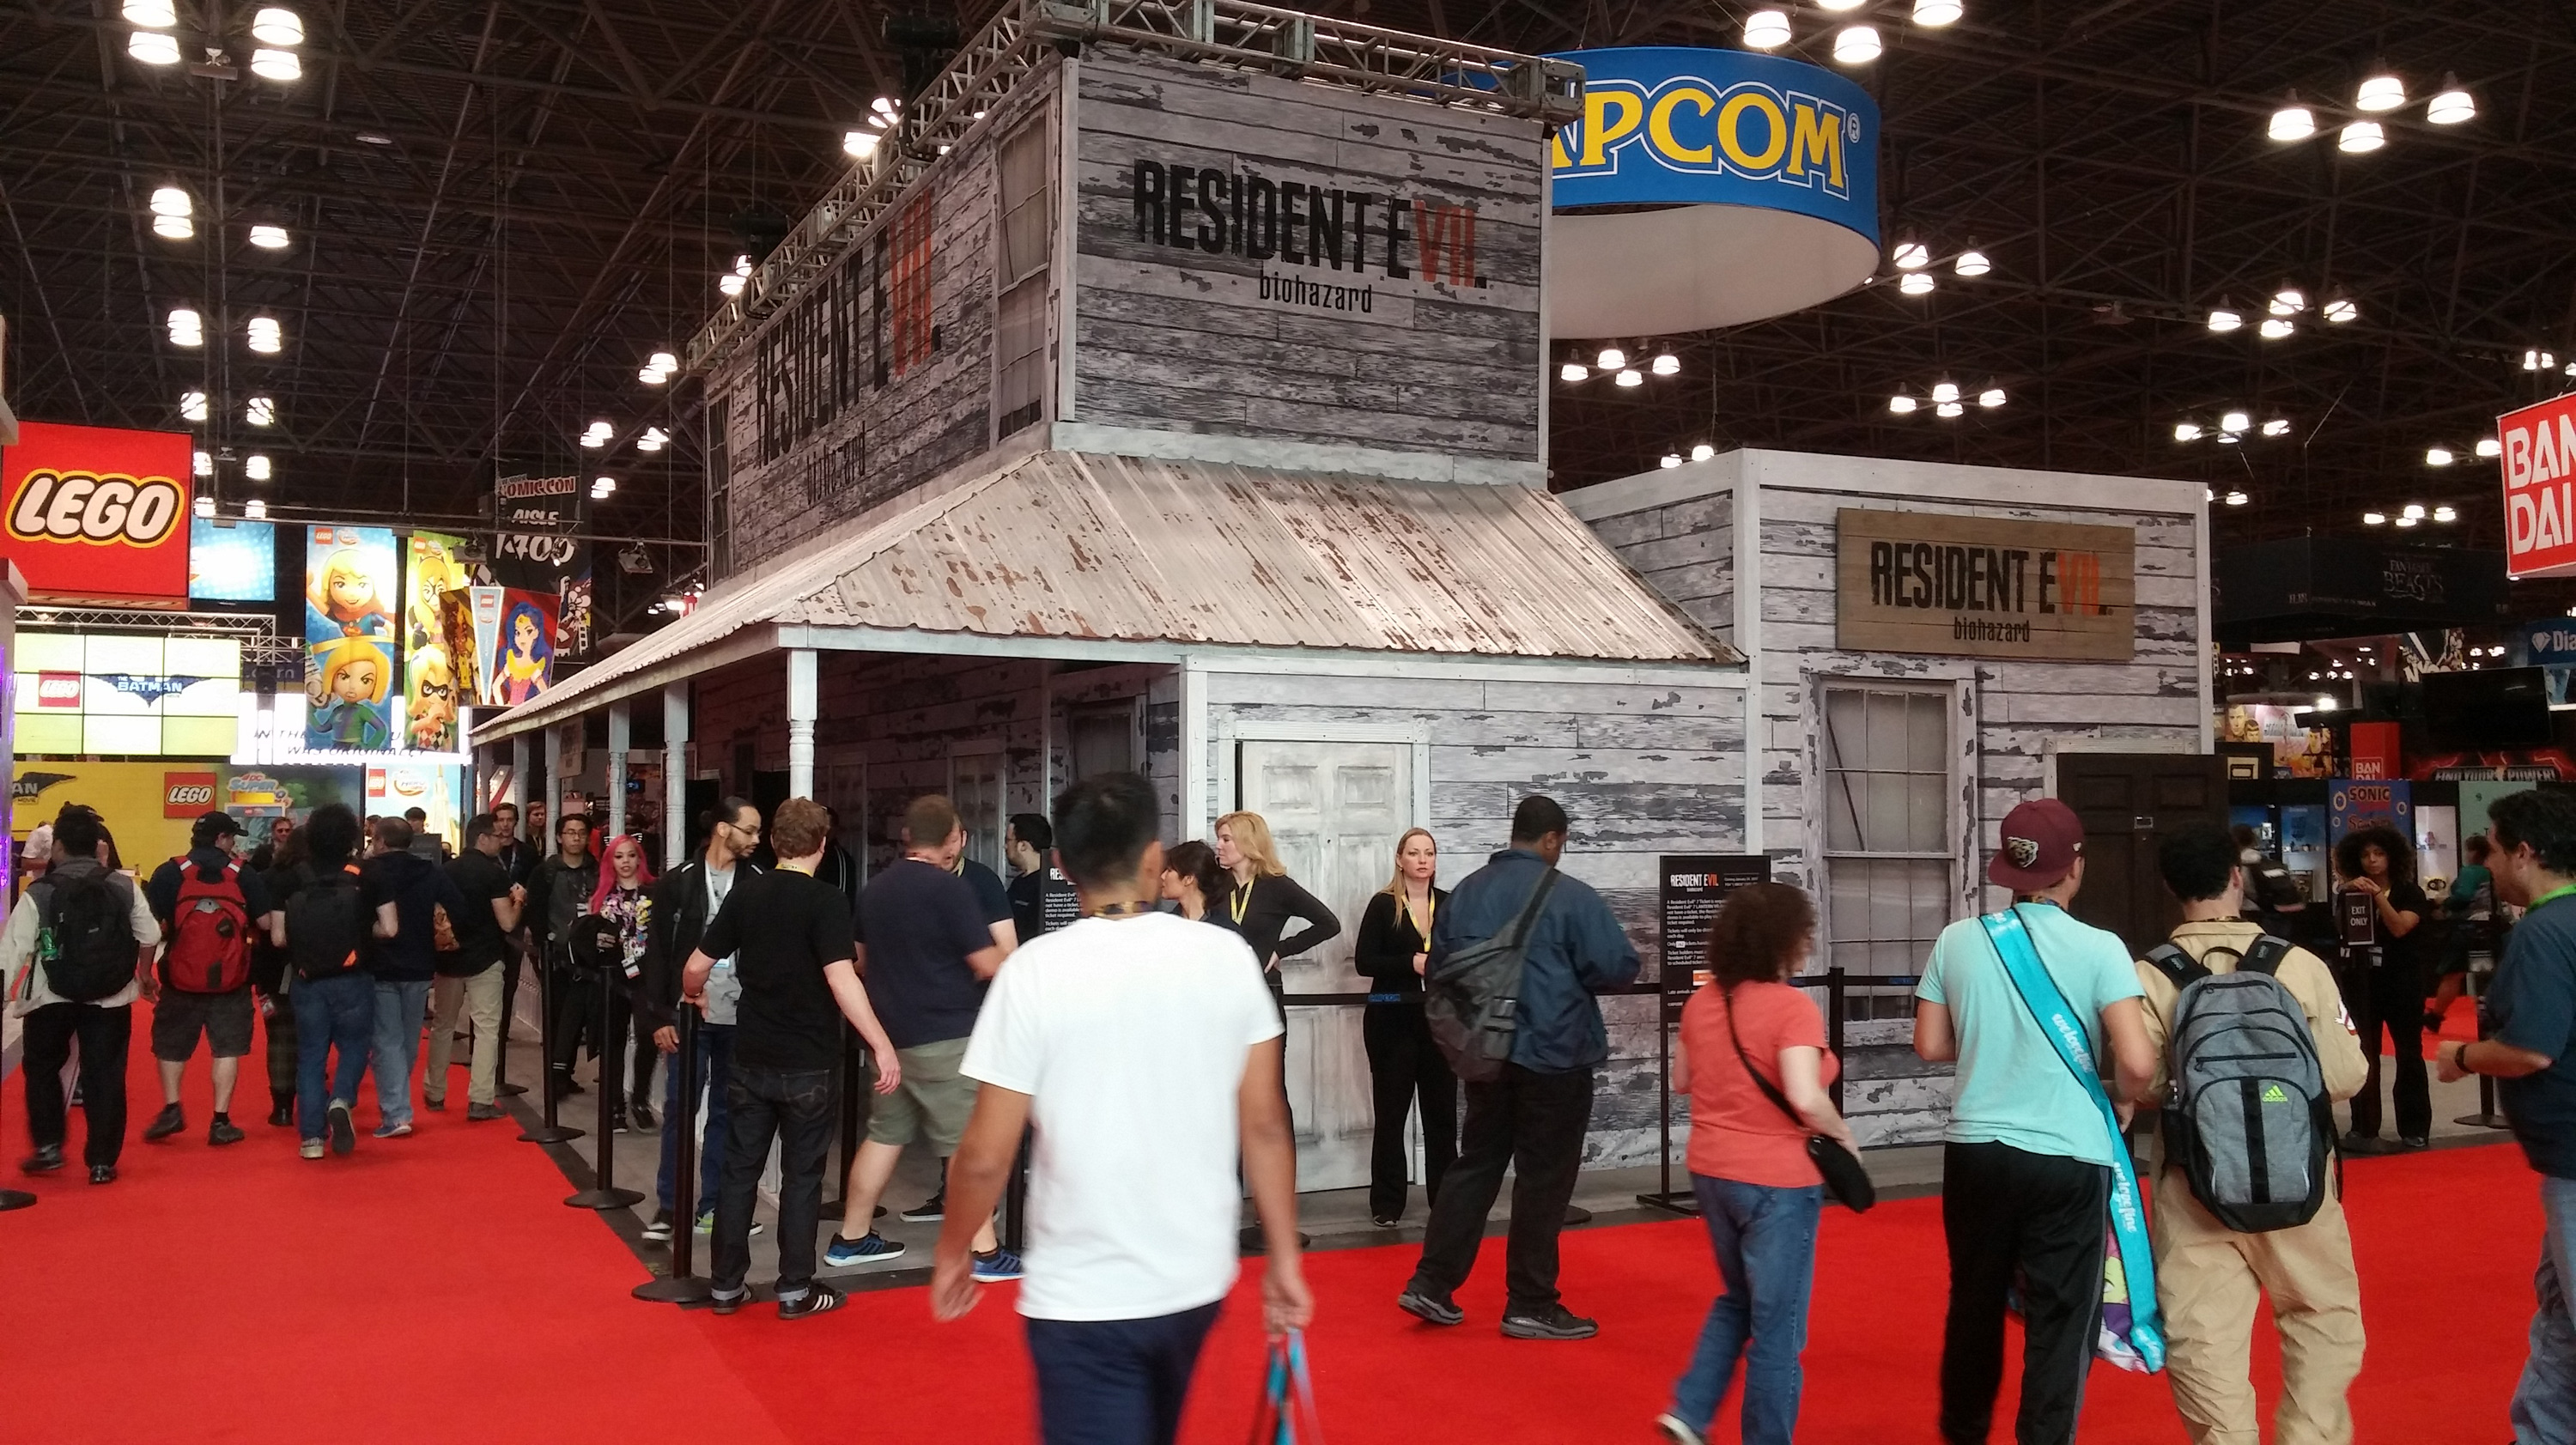 NYCC 2016 Day 3 Recap - The VR Journey Begins